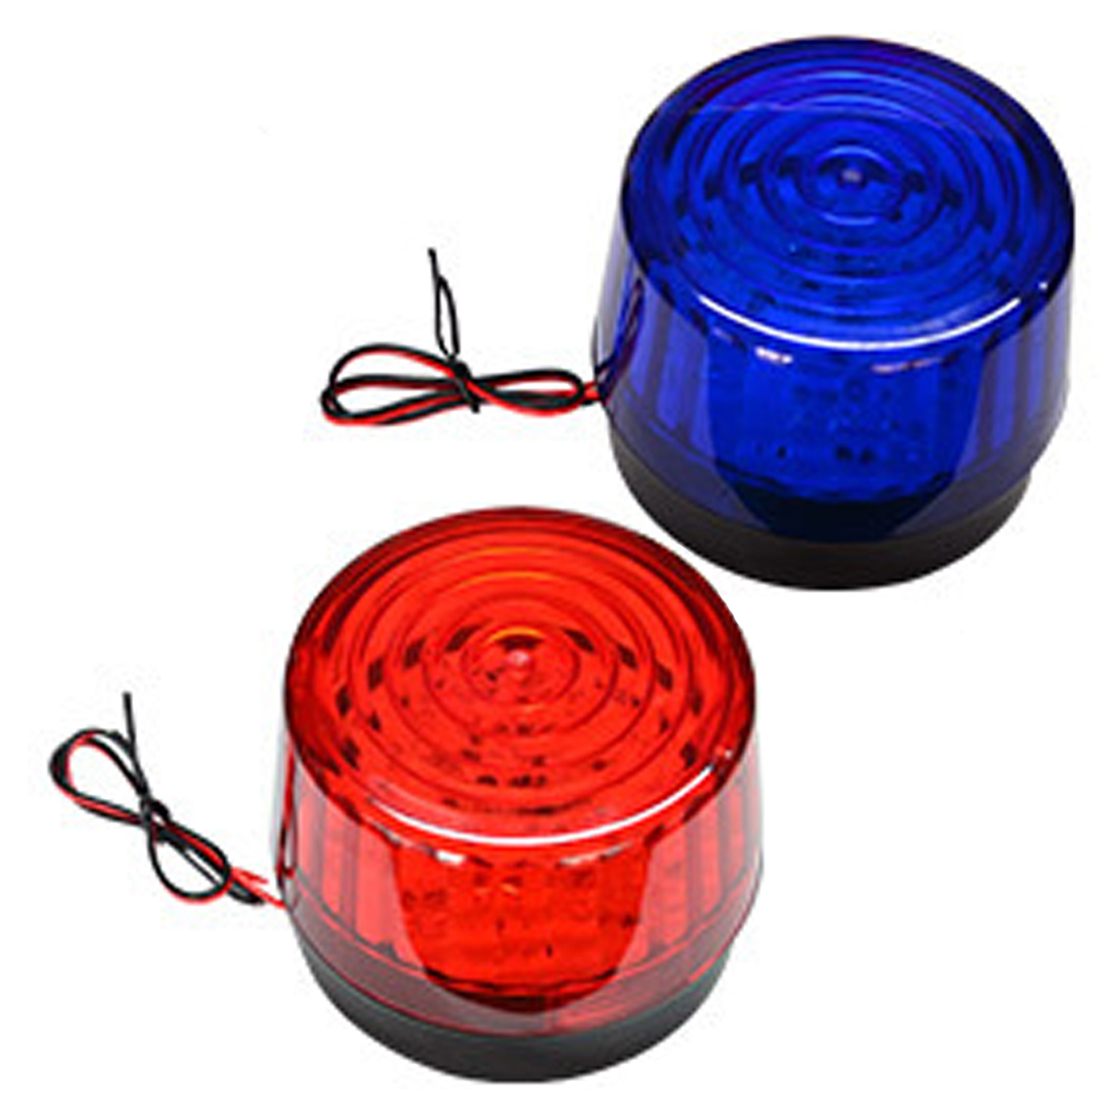 Hot Sale Mini Wired Strobe Siren Signal Warning Light Flash Siren LED Highlight Alarm Lamp for Car Security Alarm System DC12V